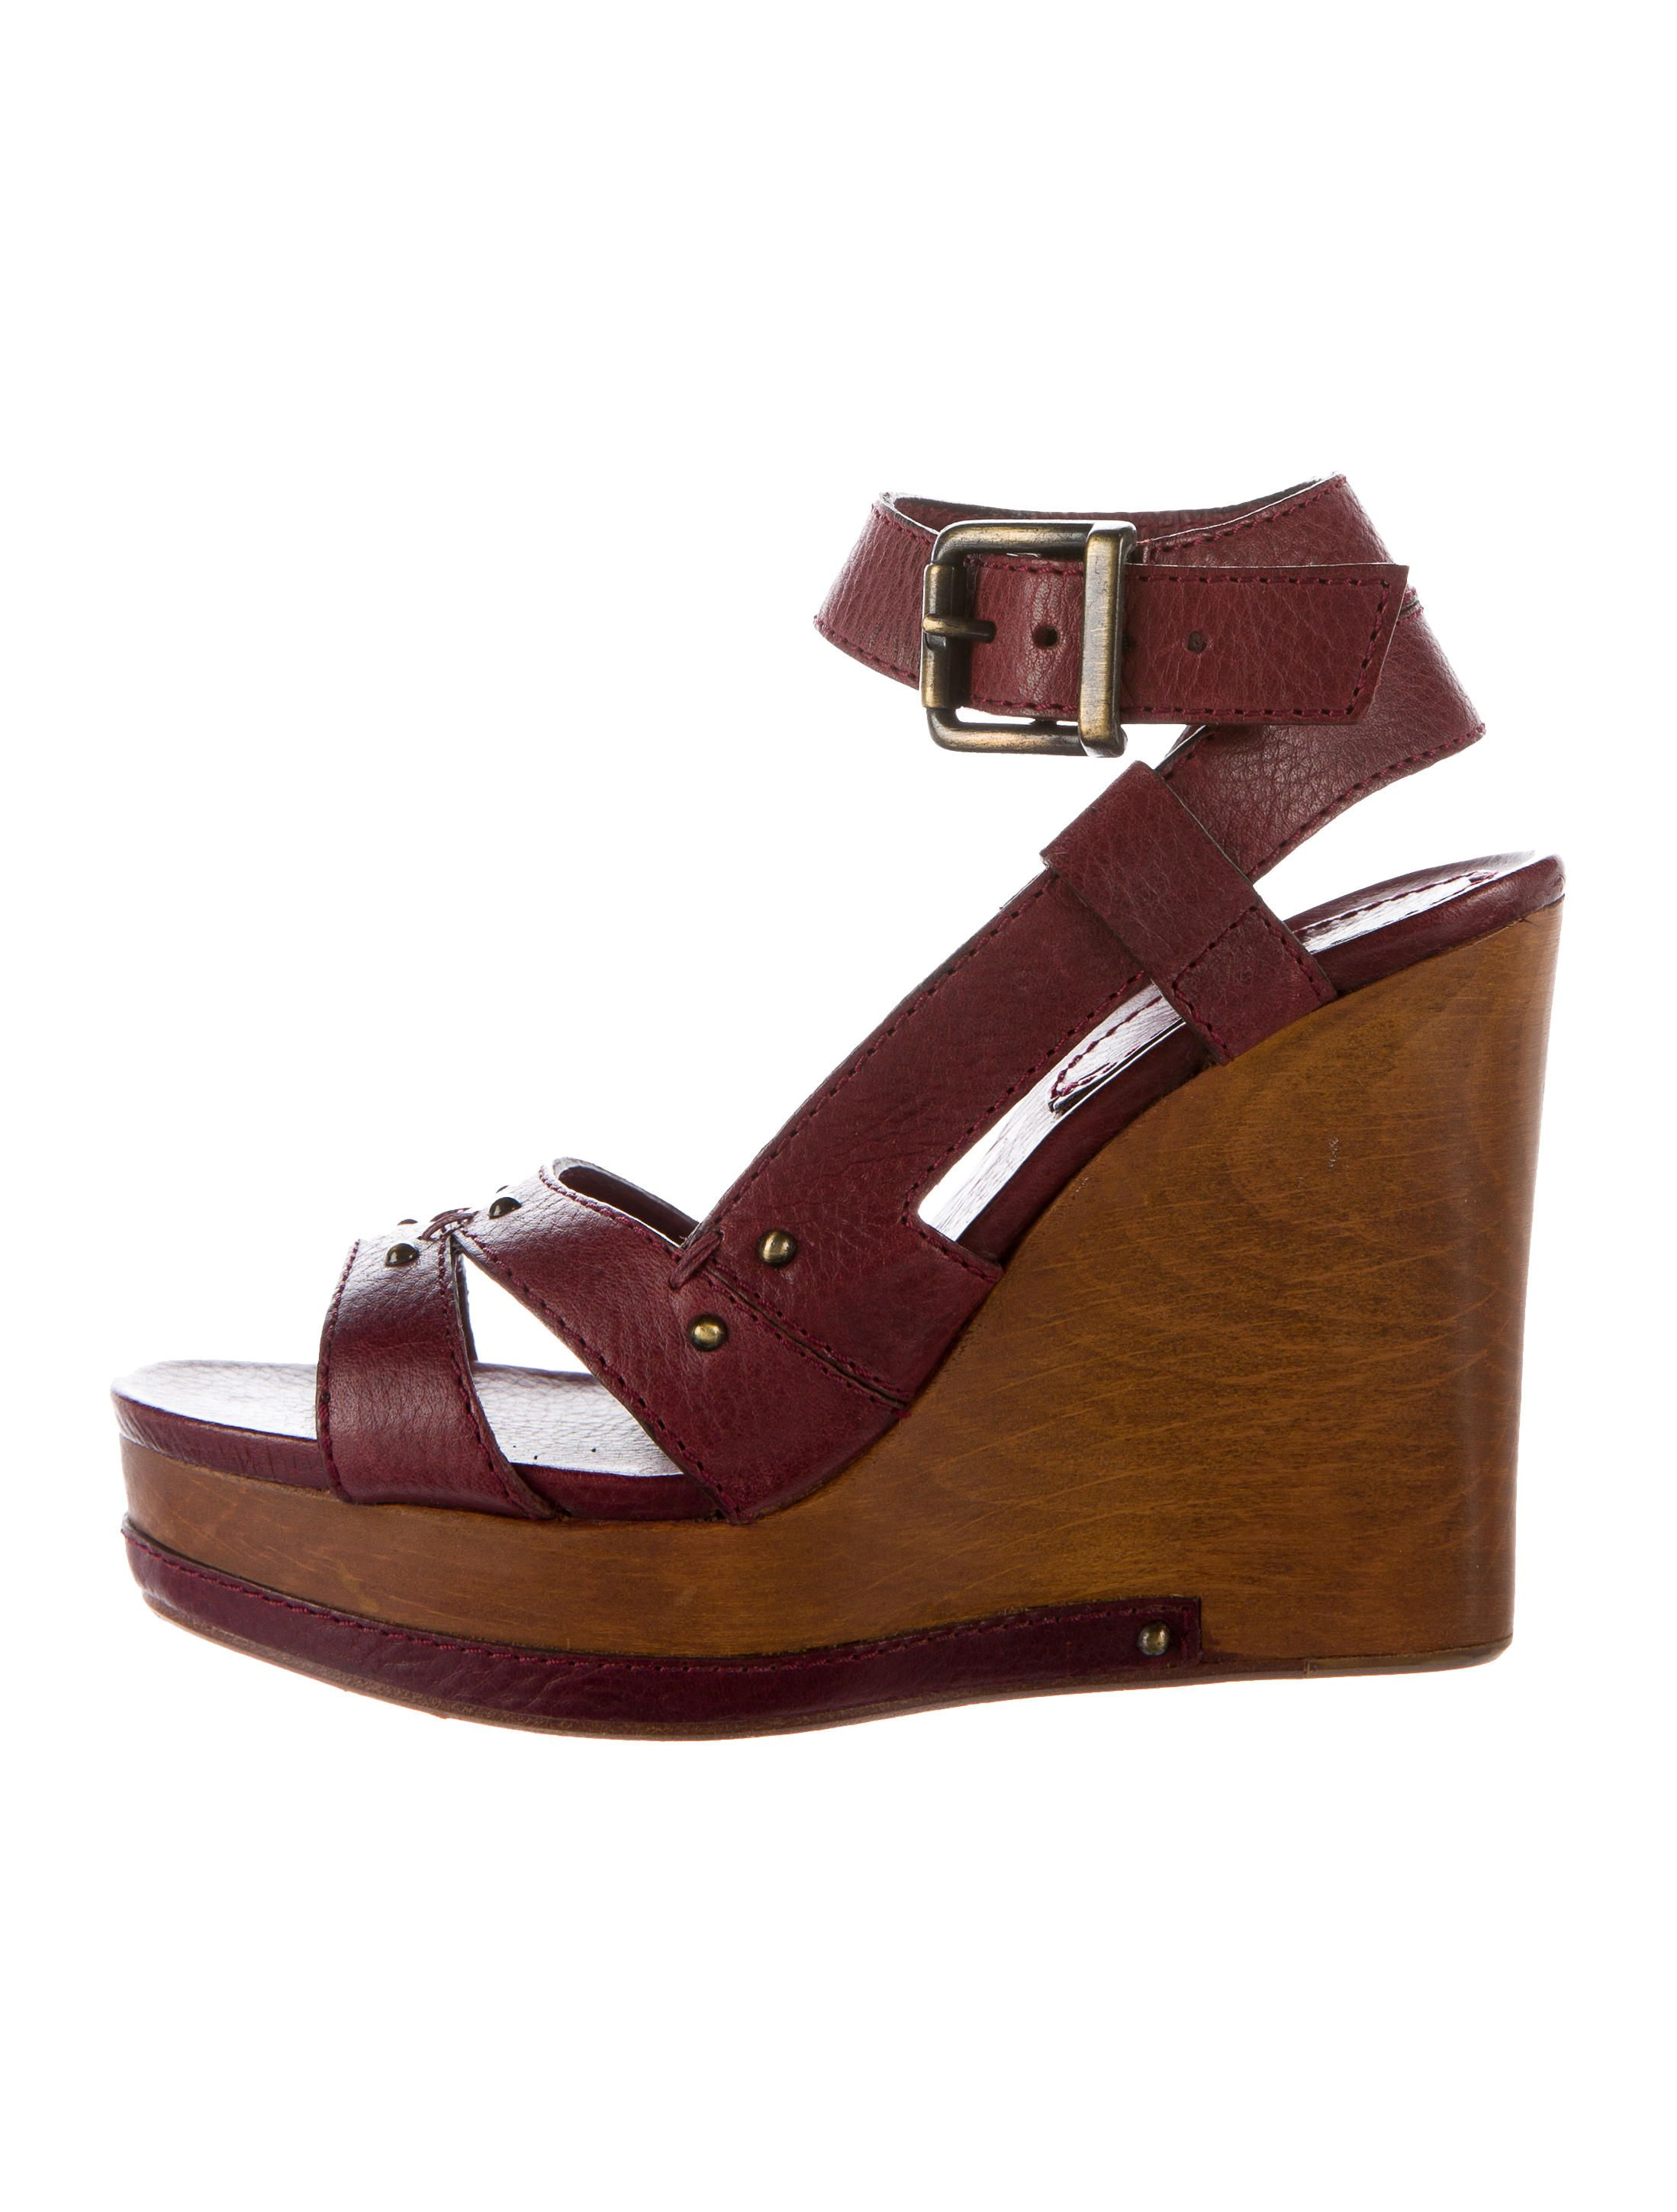 e9cacab45430 Burgundy leather Chloé wedge sandals with antiqued gold-tone hardware